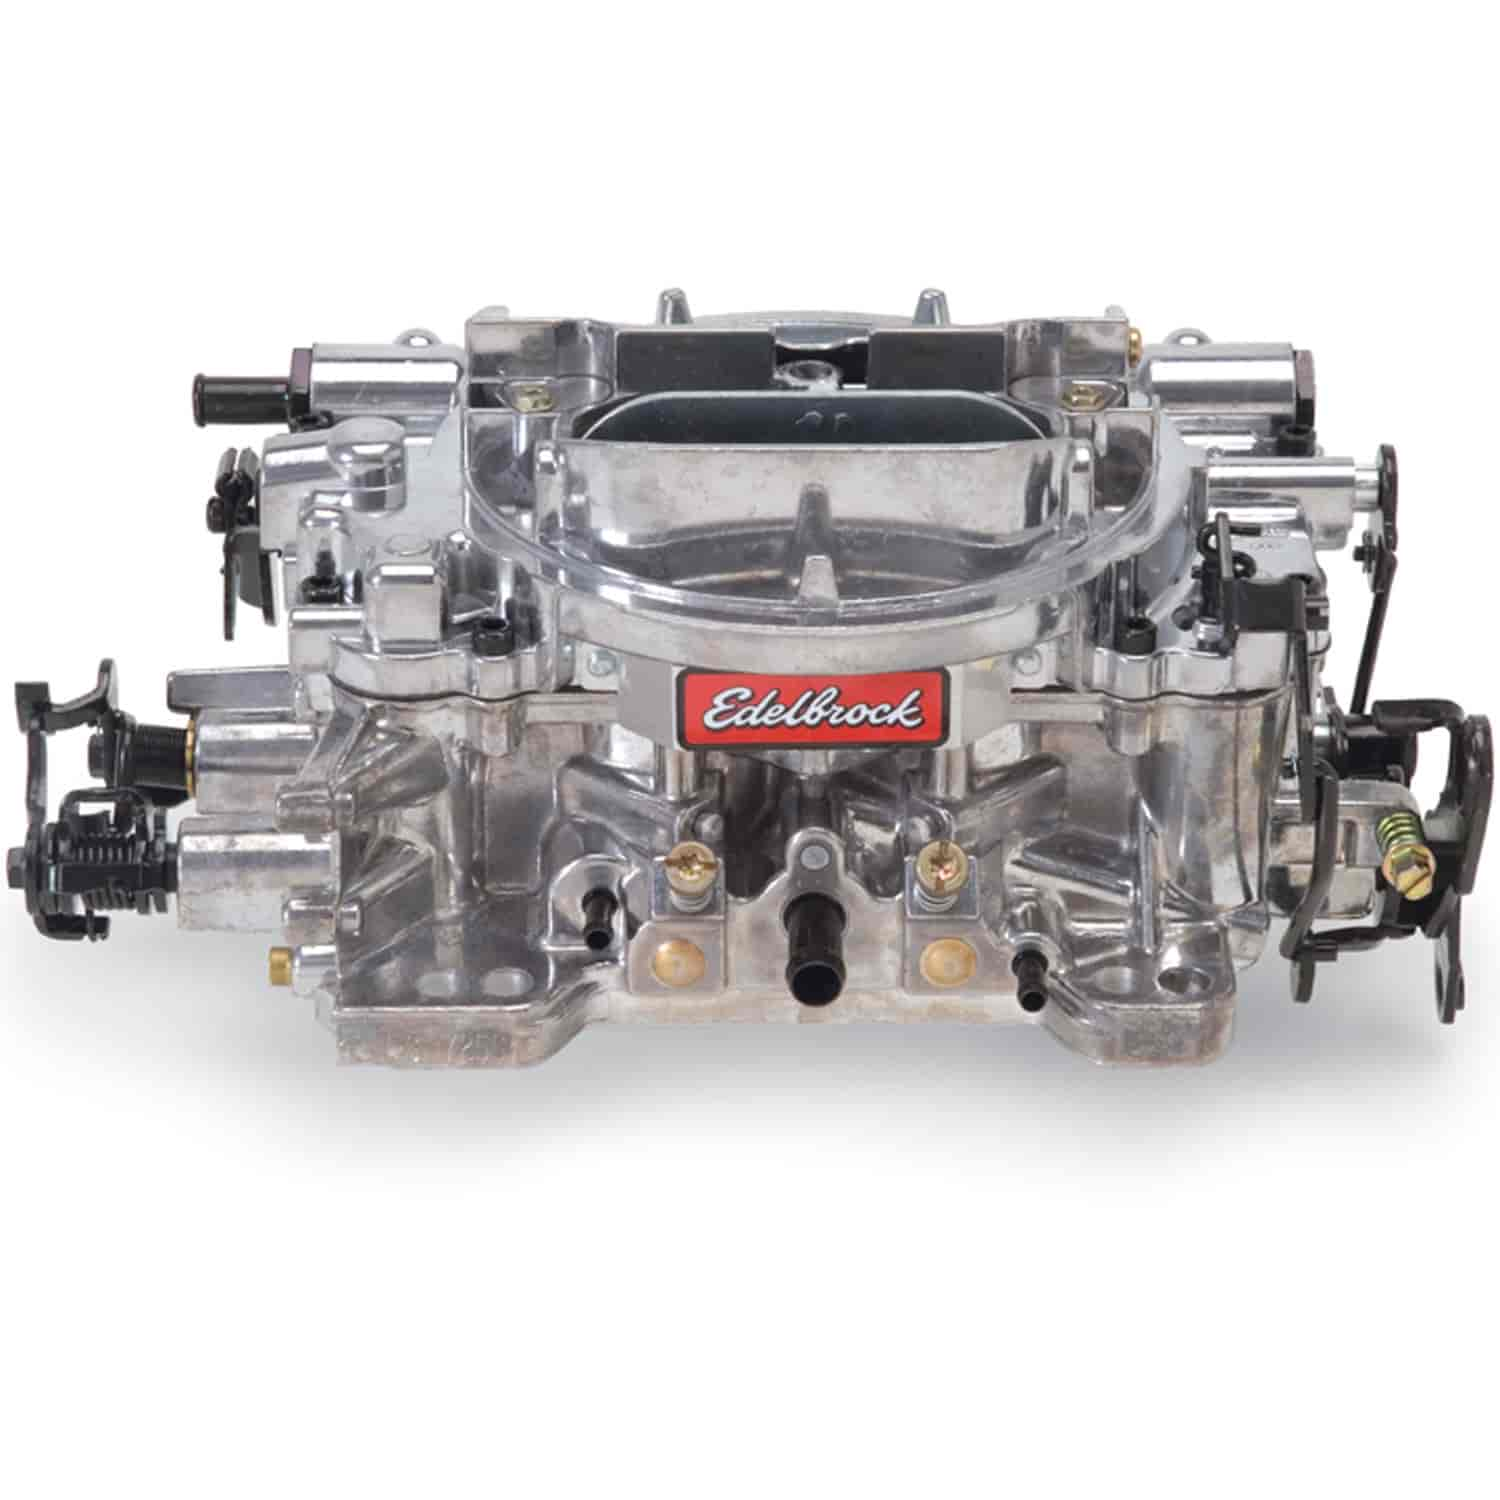 Edelbrock 1802 - Edelbrock Thunder Series AVS Carburetors